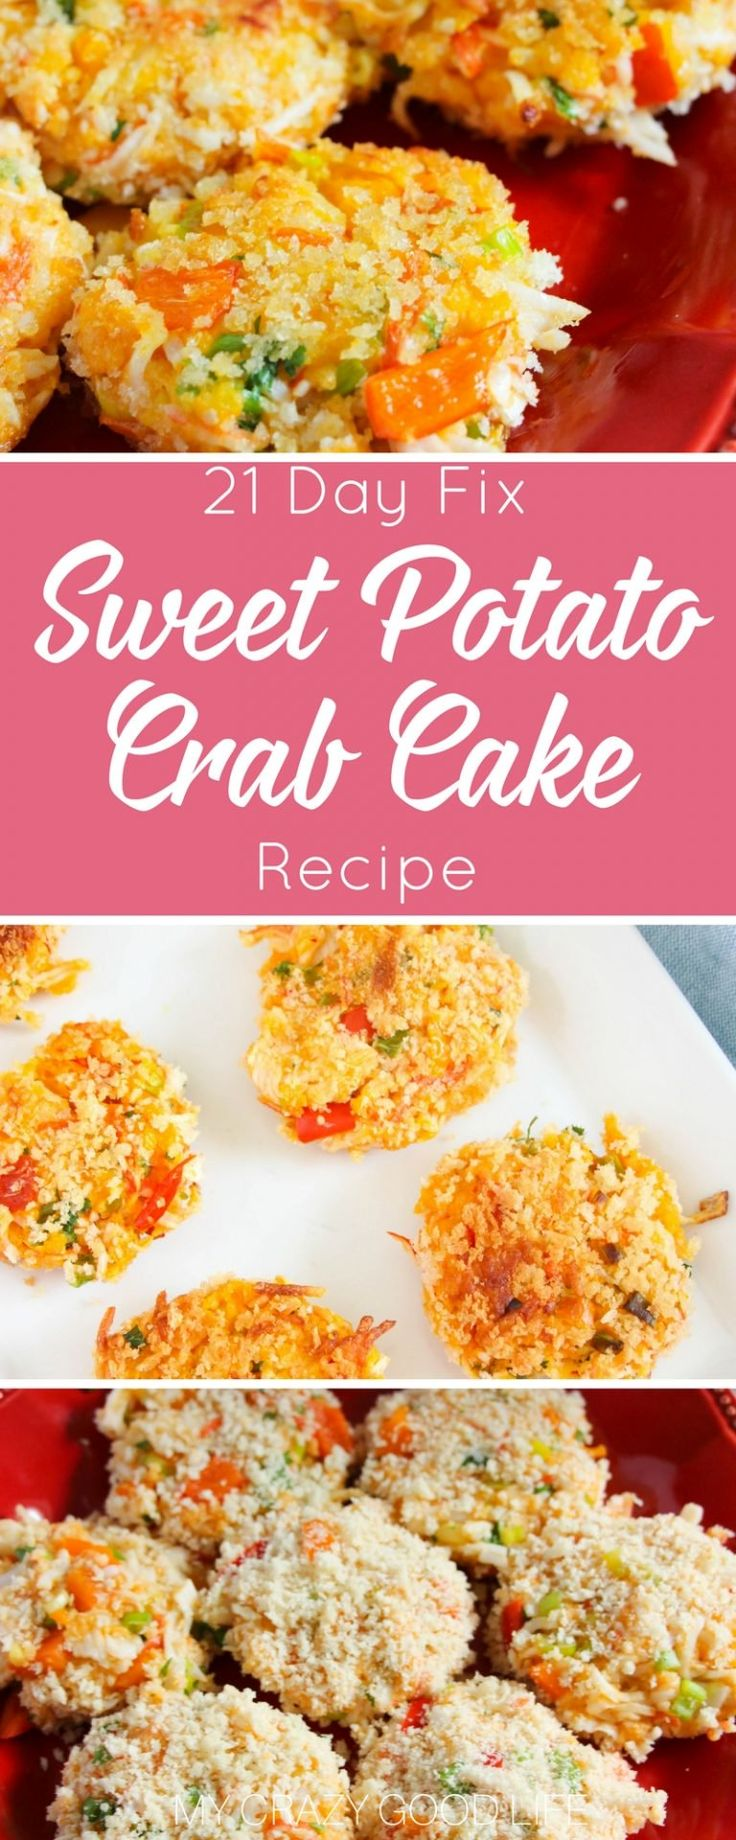 If you are looking for a healthy crab cake recipe you've come to the right spot! These sweet potato crab cakes are so easy and very delicious! 21 Day Fix Crab Cakes with container counts.